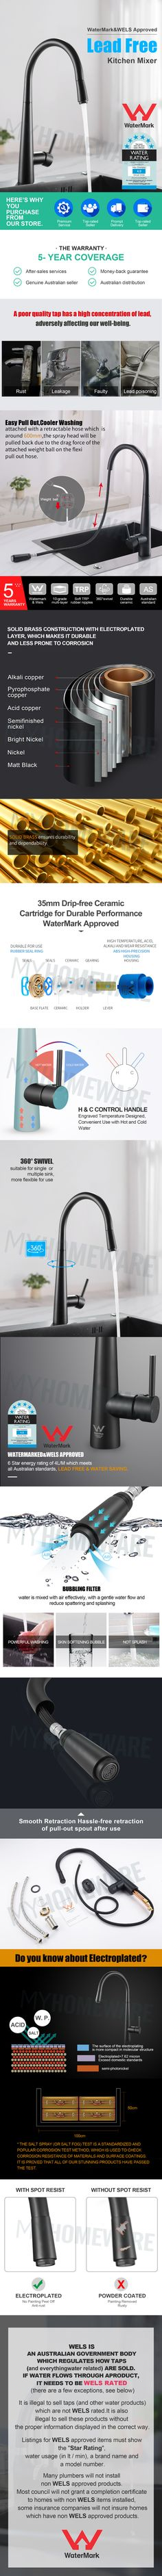 Watermark WELS Pull Out Kitchen Tap Mixer Brass Black Plated Laundry Tap Black Kitchen Taps, Black Granite Sink, Granite Kitchen Sinks, Kitchen Mixer Taps, Sink Mixer Taps, Fancy Kitchens, Black Kitchens, Laminate Benchtop, Butler Sink